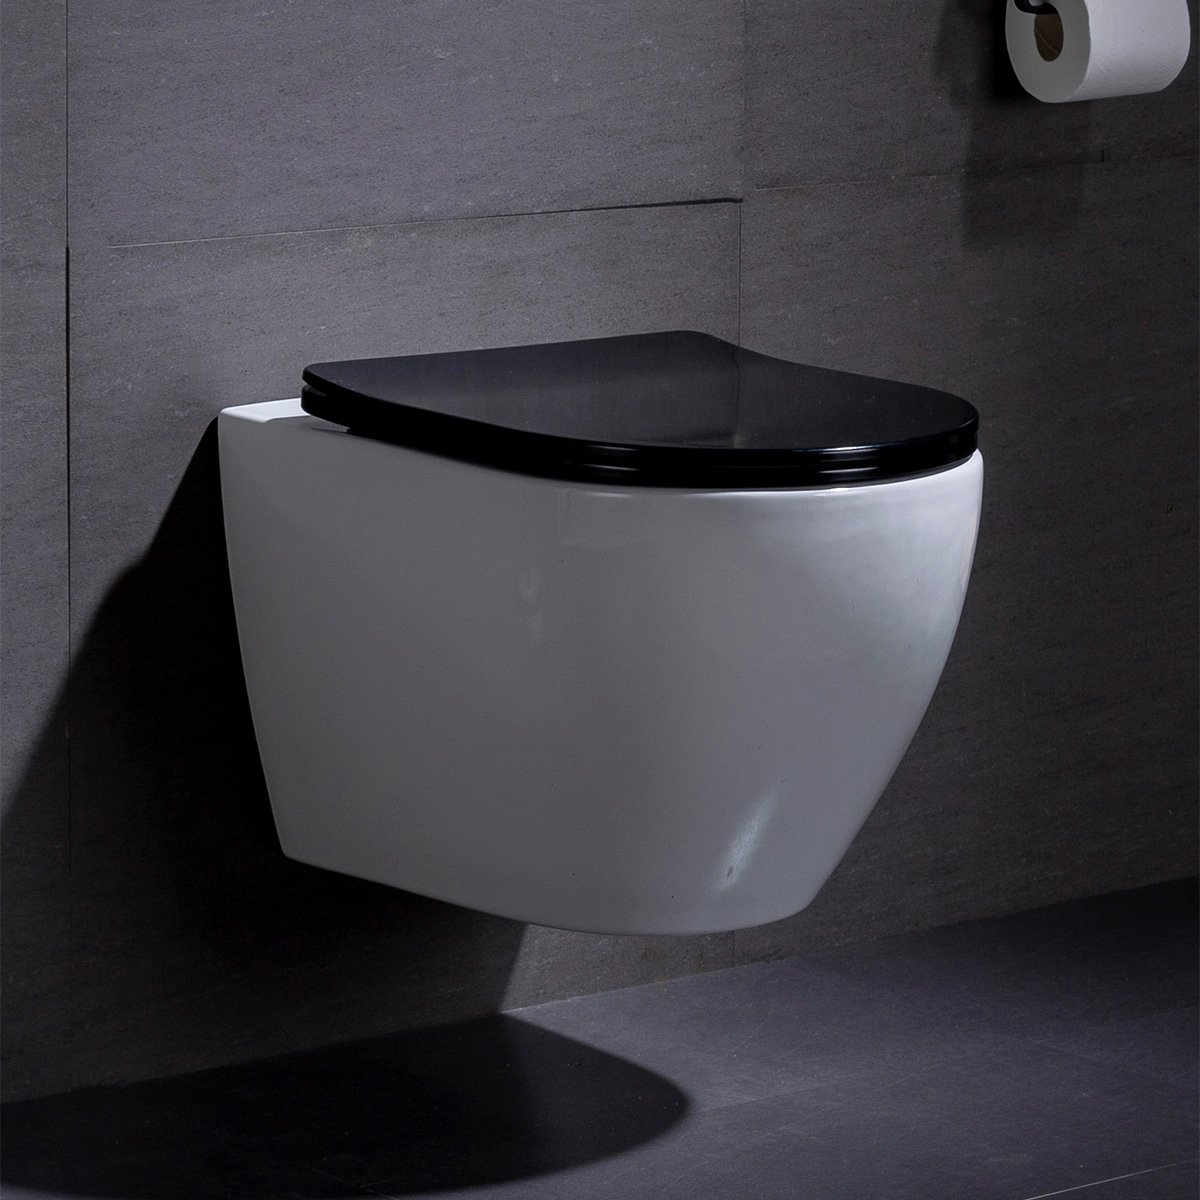 Wandcloset - Hangend Toilet Beauti Flatline Zwart - Inbouwtoilet Rimfree WC Pot